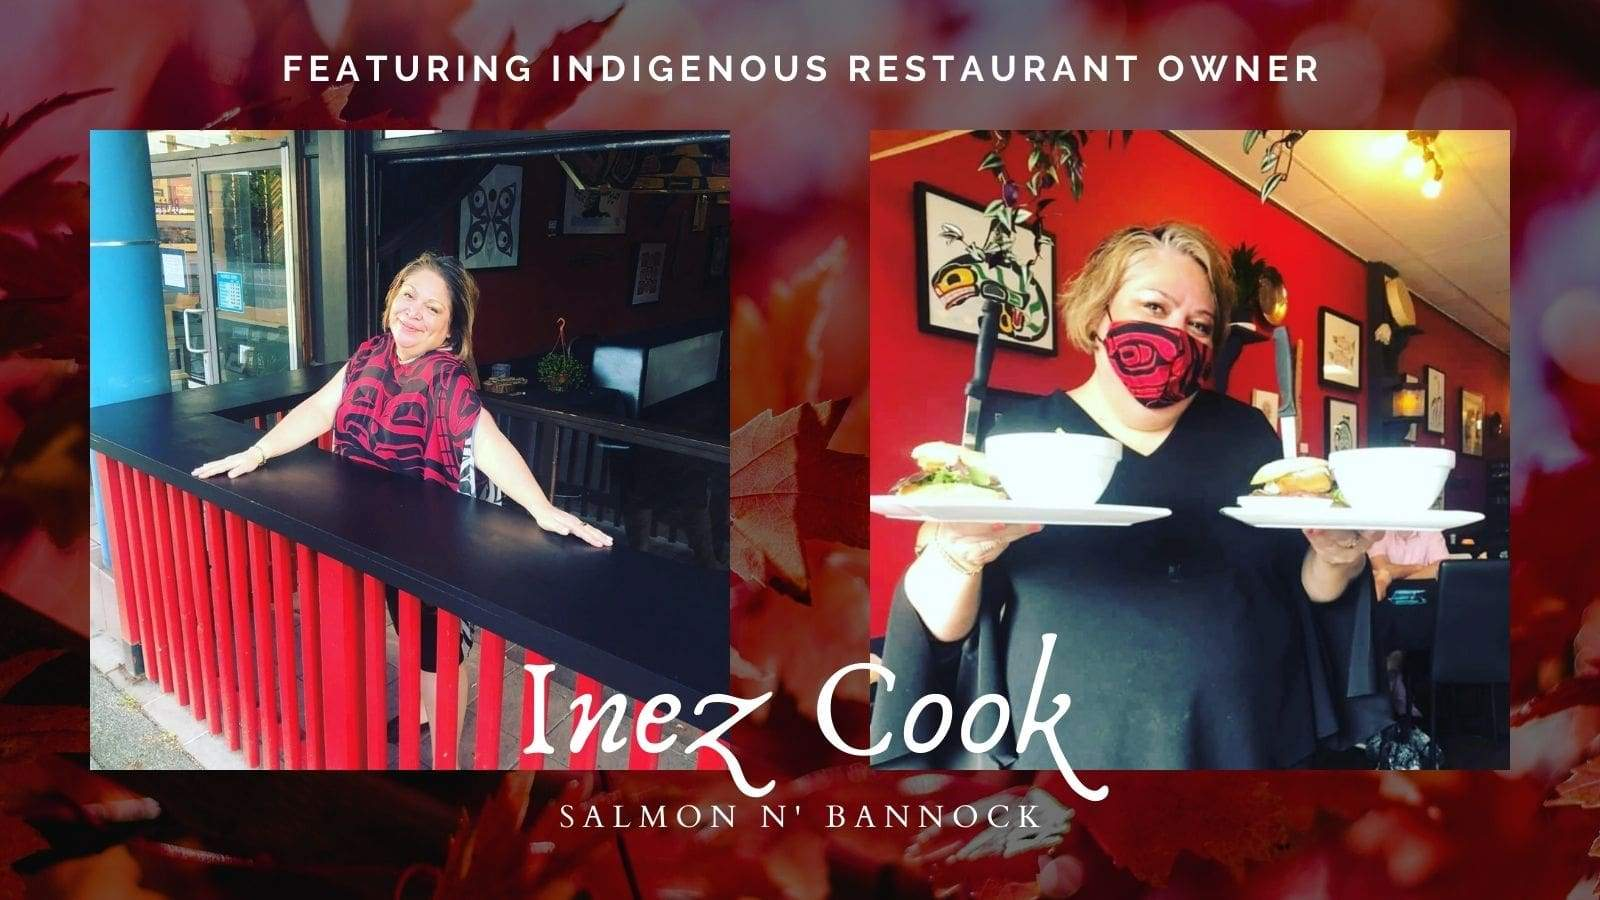 Vancouver Indigenous Restaurant Owner Inez Cook from Salmon n Bannock talks to Amaterasu Beauty about life, beauty and giving back